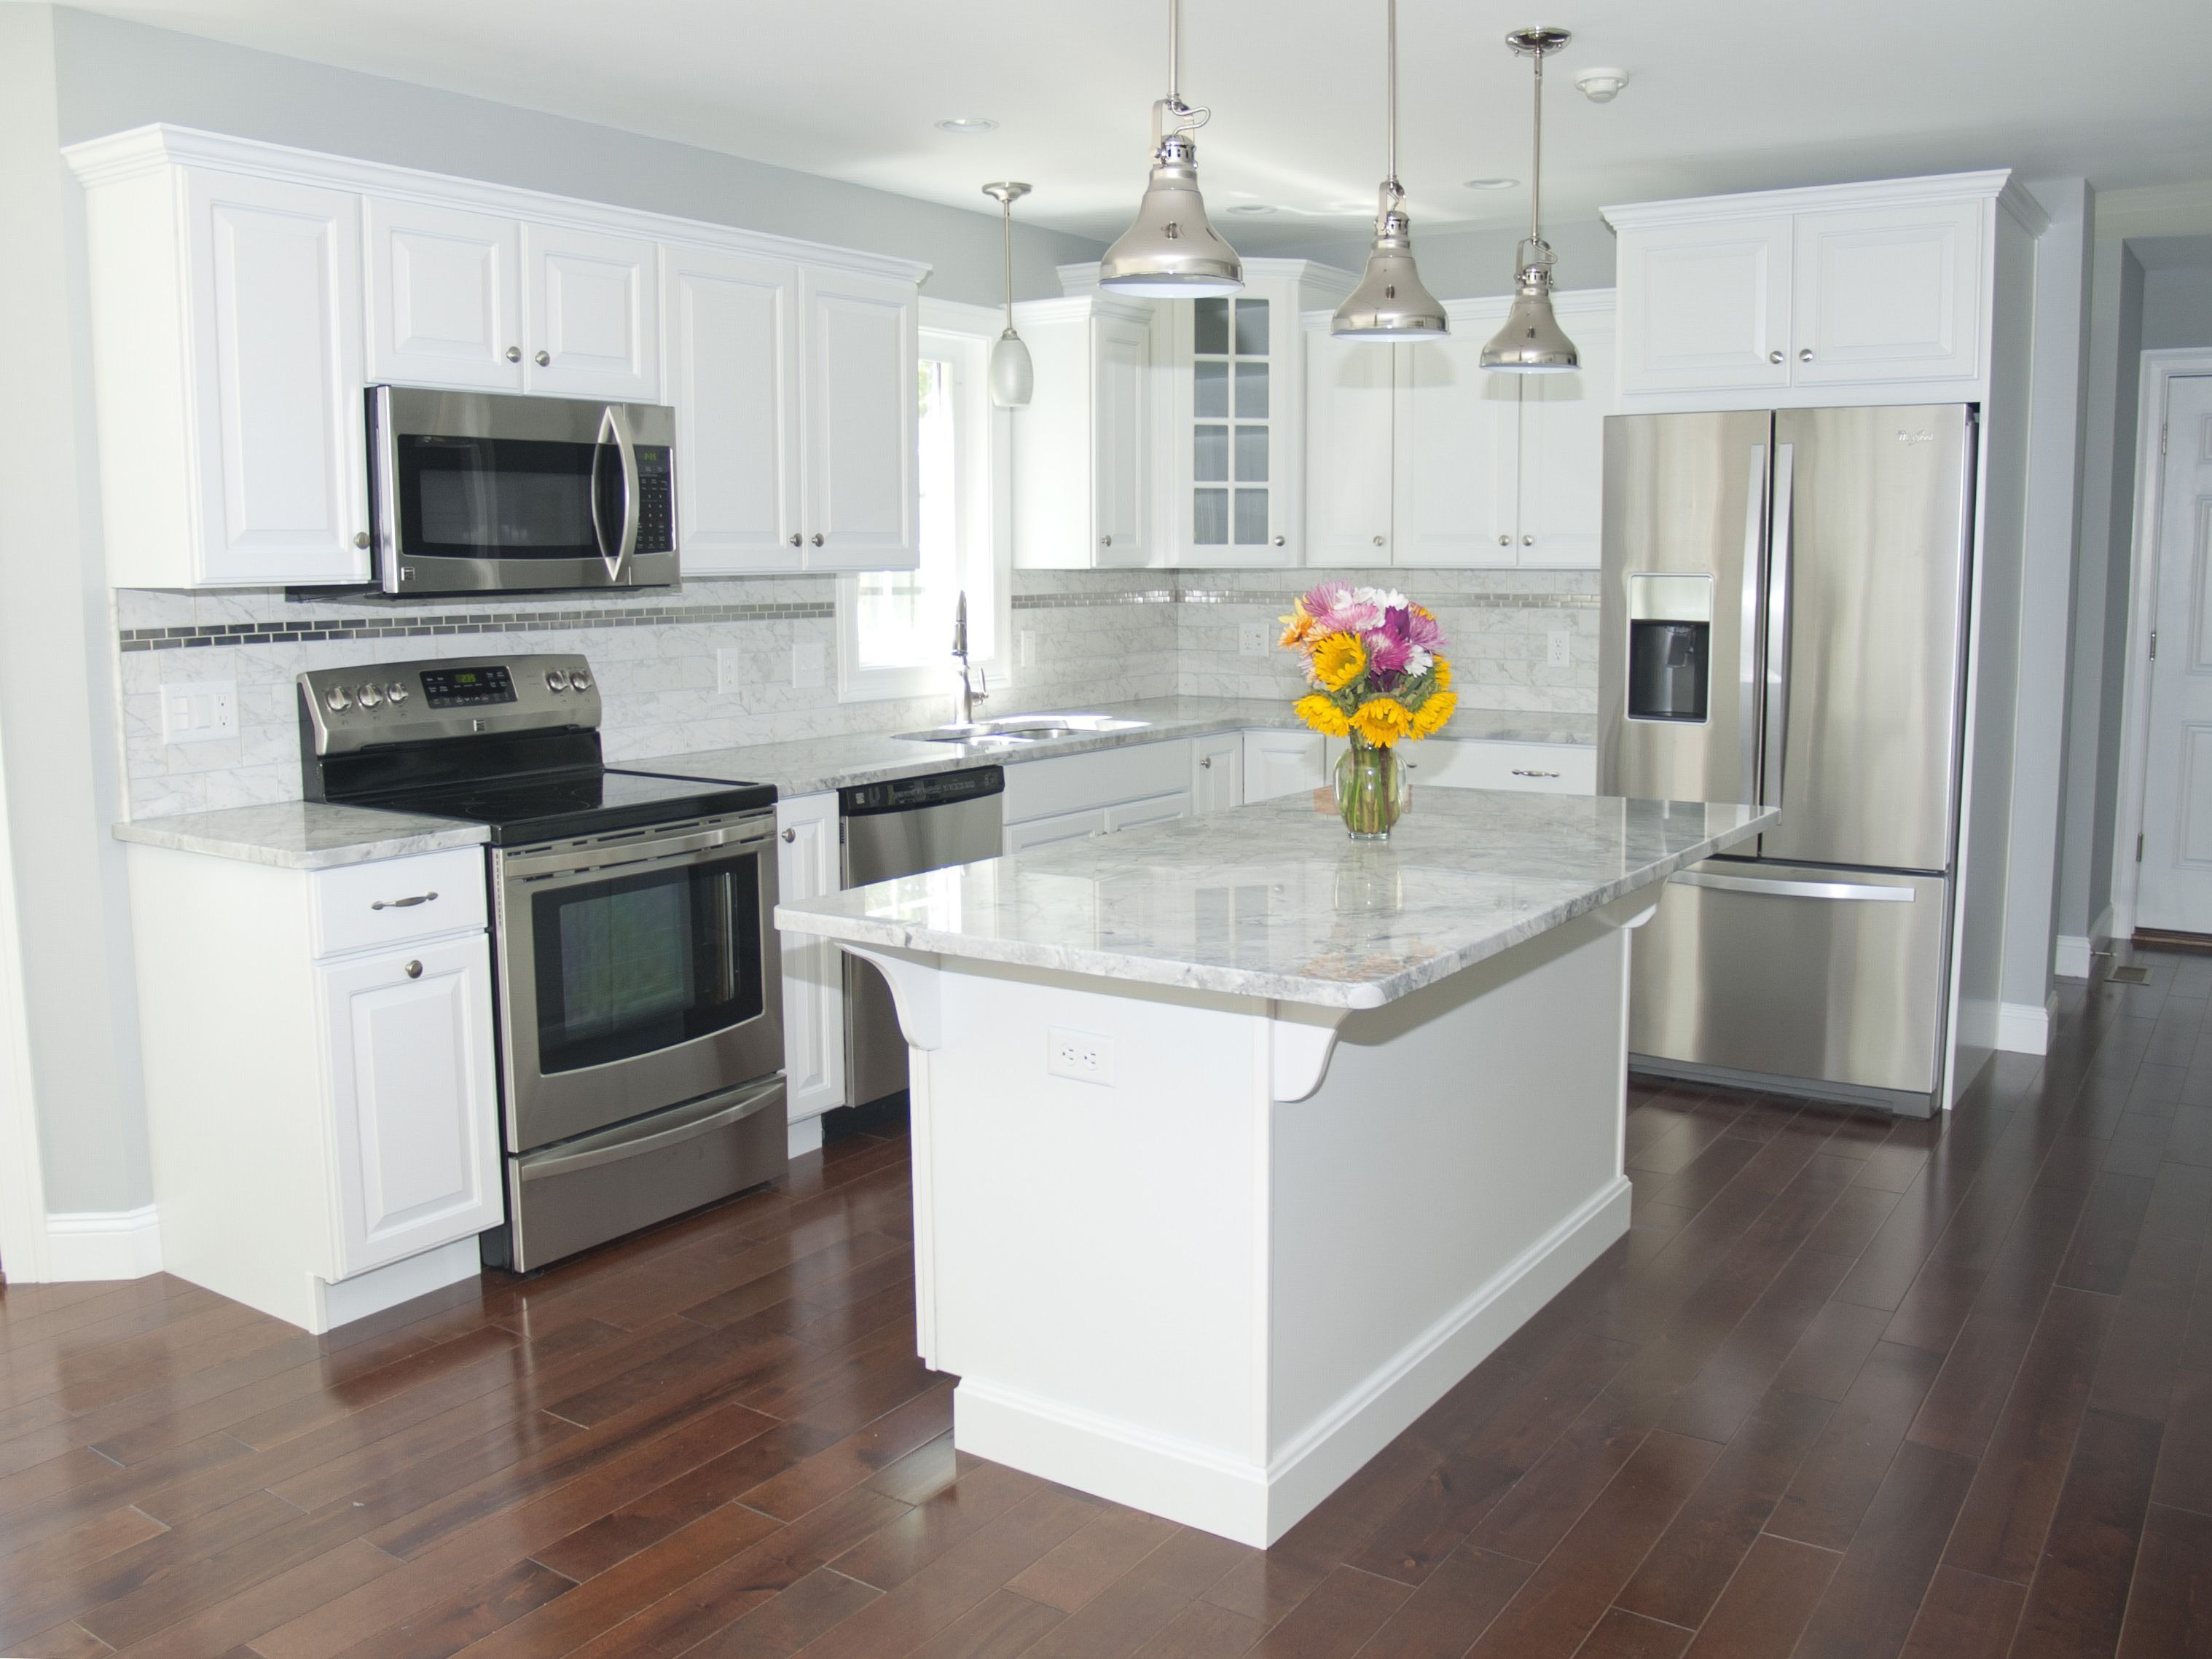 modern kitchen with white stainless